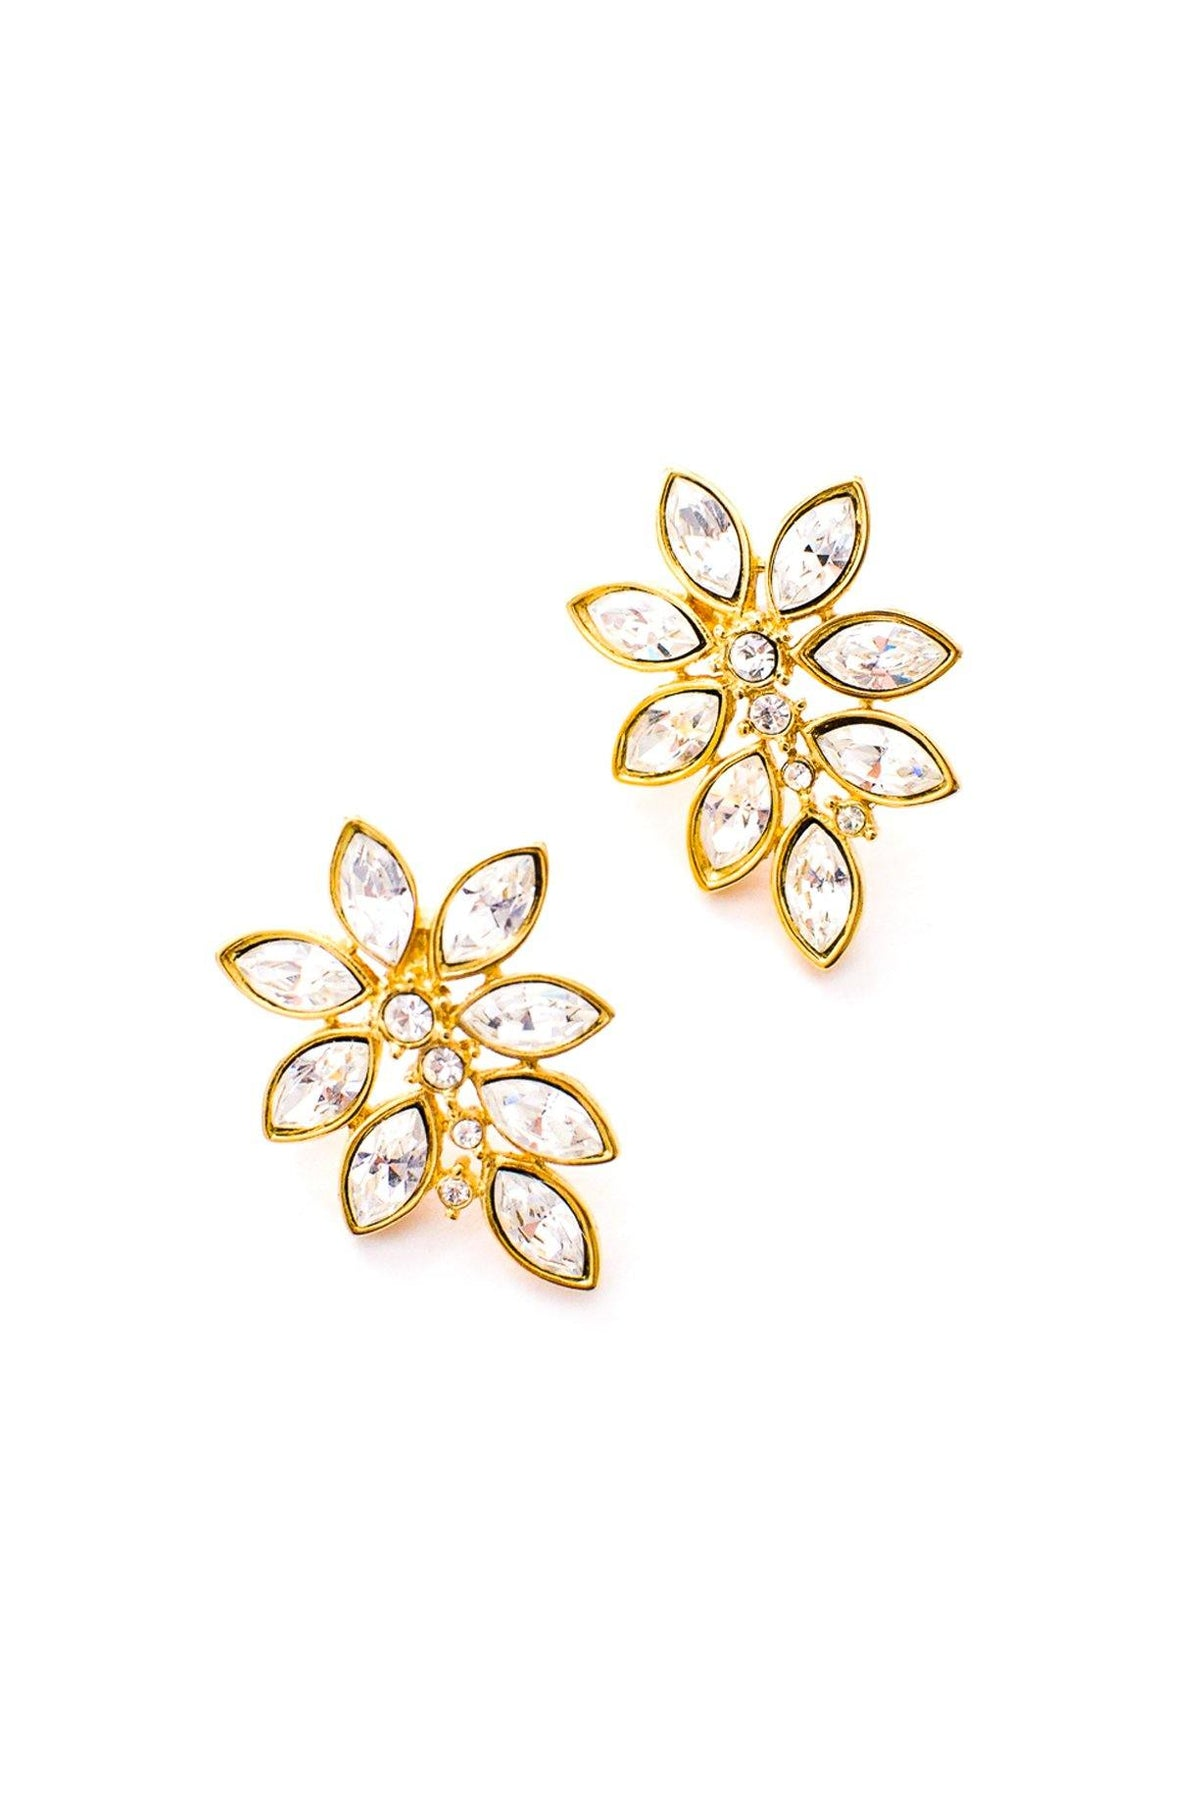 Vintage Monet rhinestone floral earrings from Sweet & Spark.